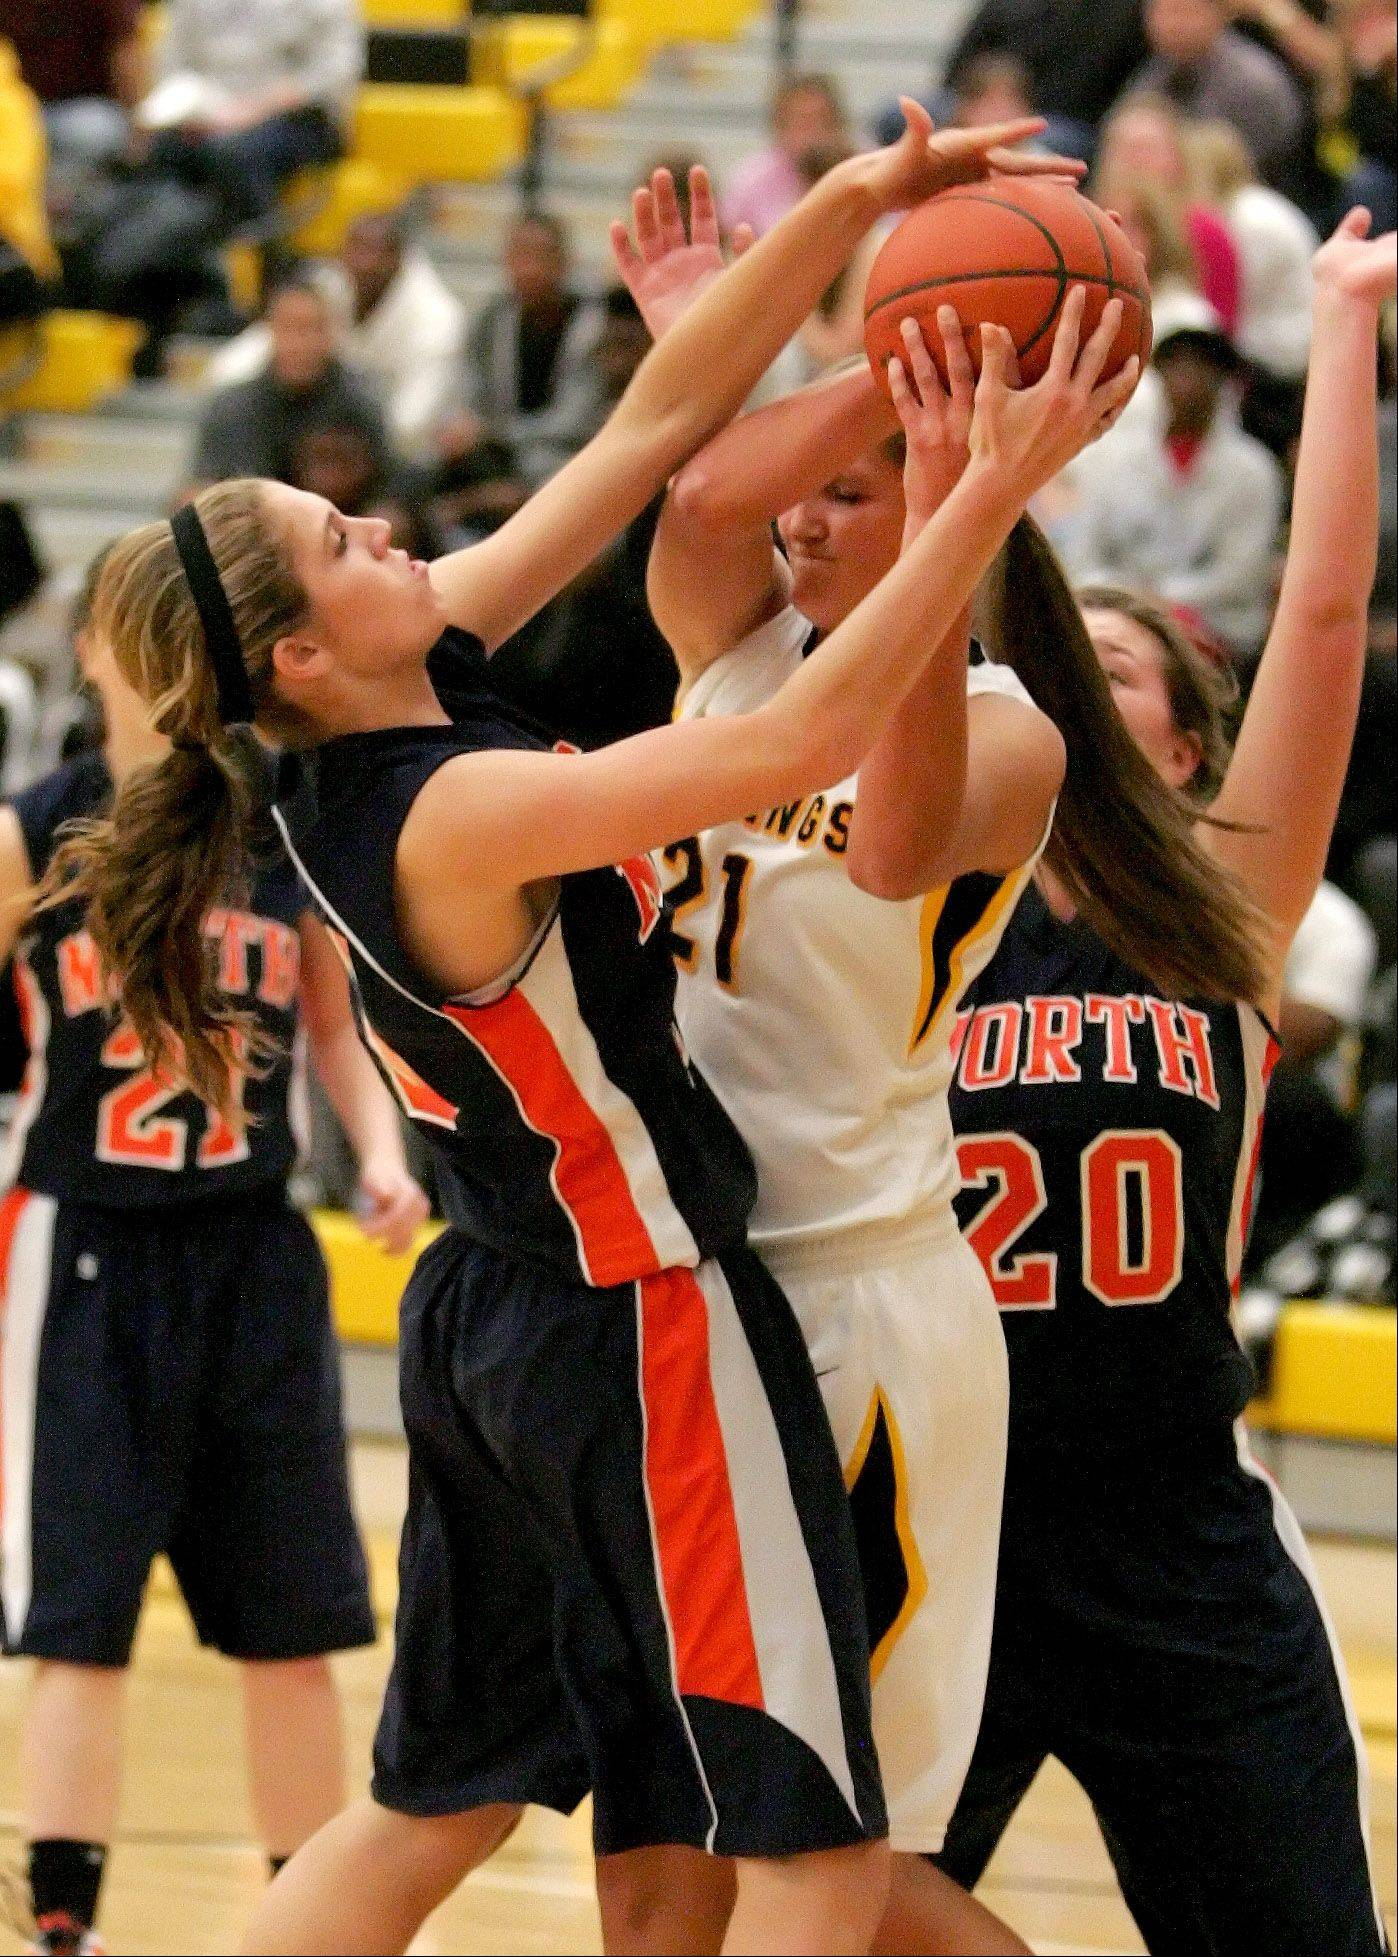 Kayla Sharples, left, of Naperville North and Anna Petersen of Metea Valley go up for a rebound in girls basketball action on Tuesday in Aurora.